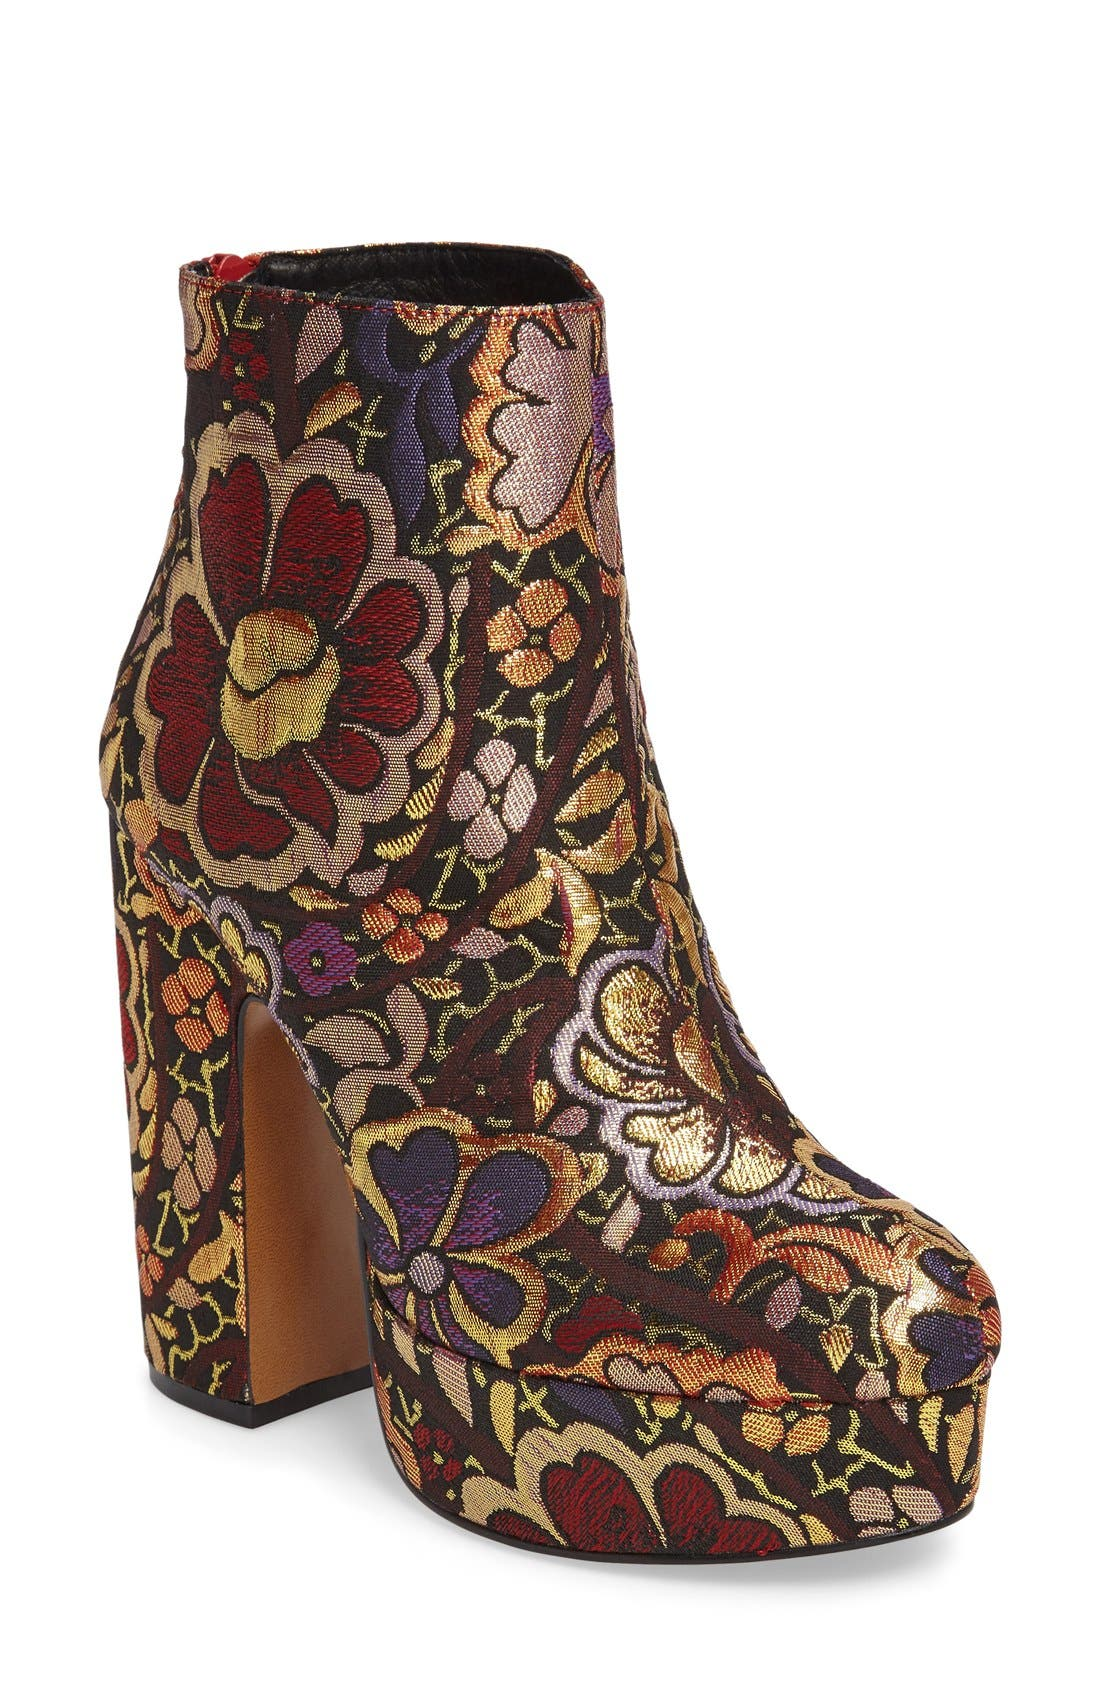 Alternate Image 1 Selected - Shellys London Chanah Embroidered Platform Bootie (Women)